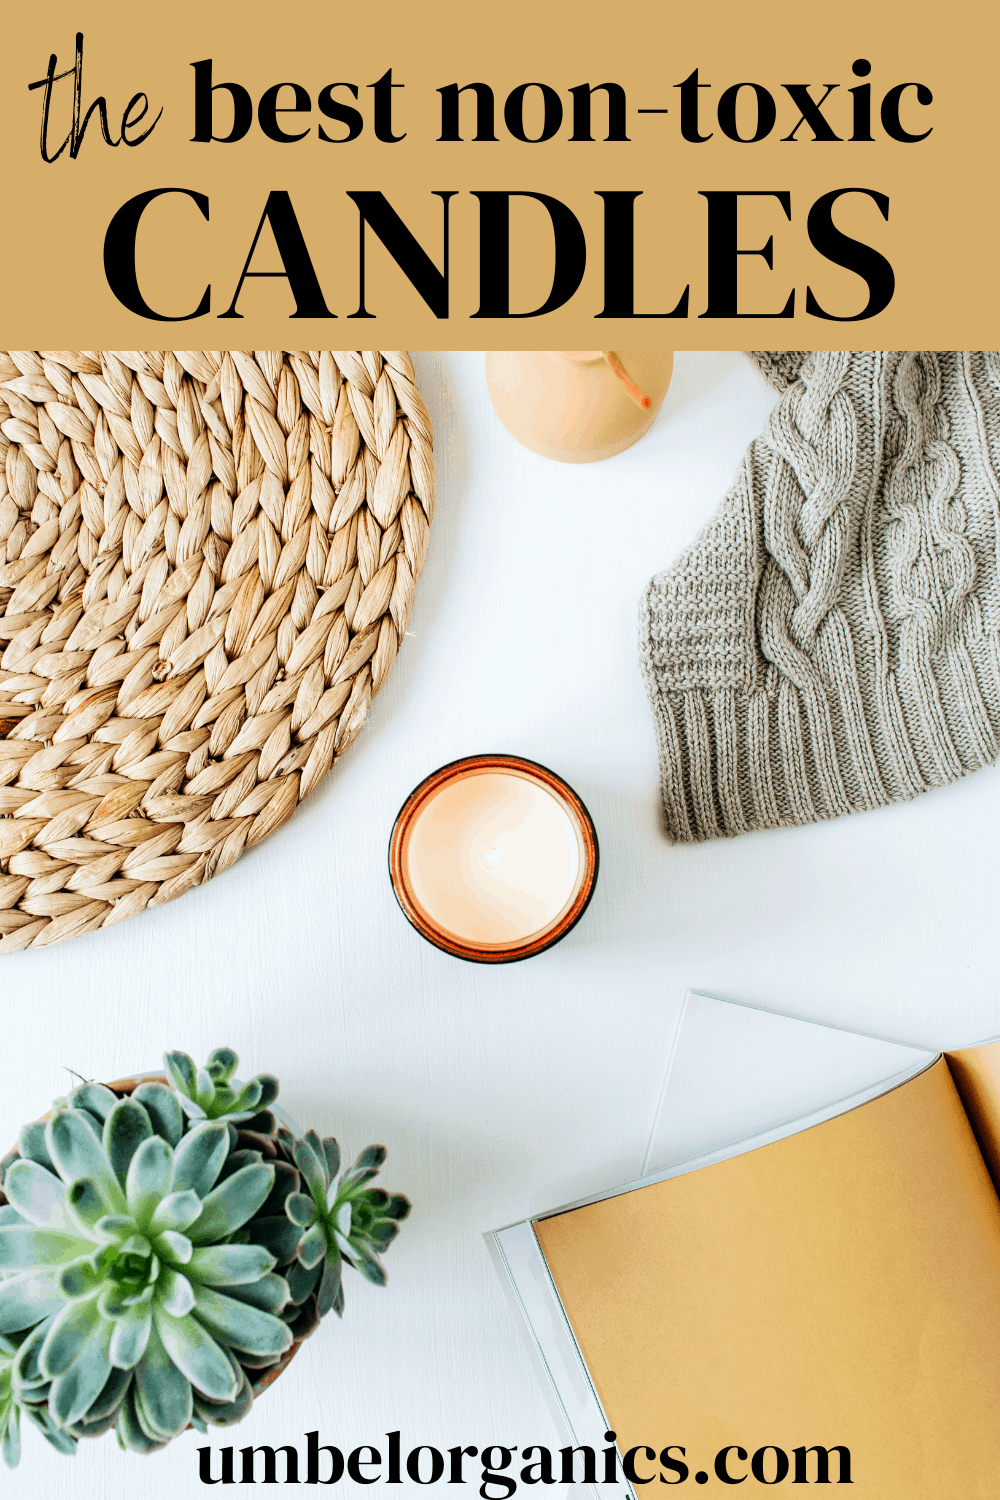 Flatlay with candle and plant